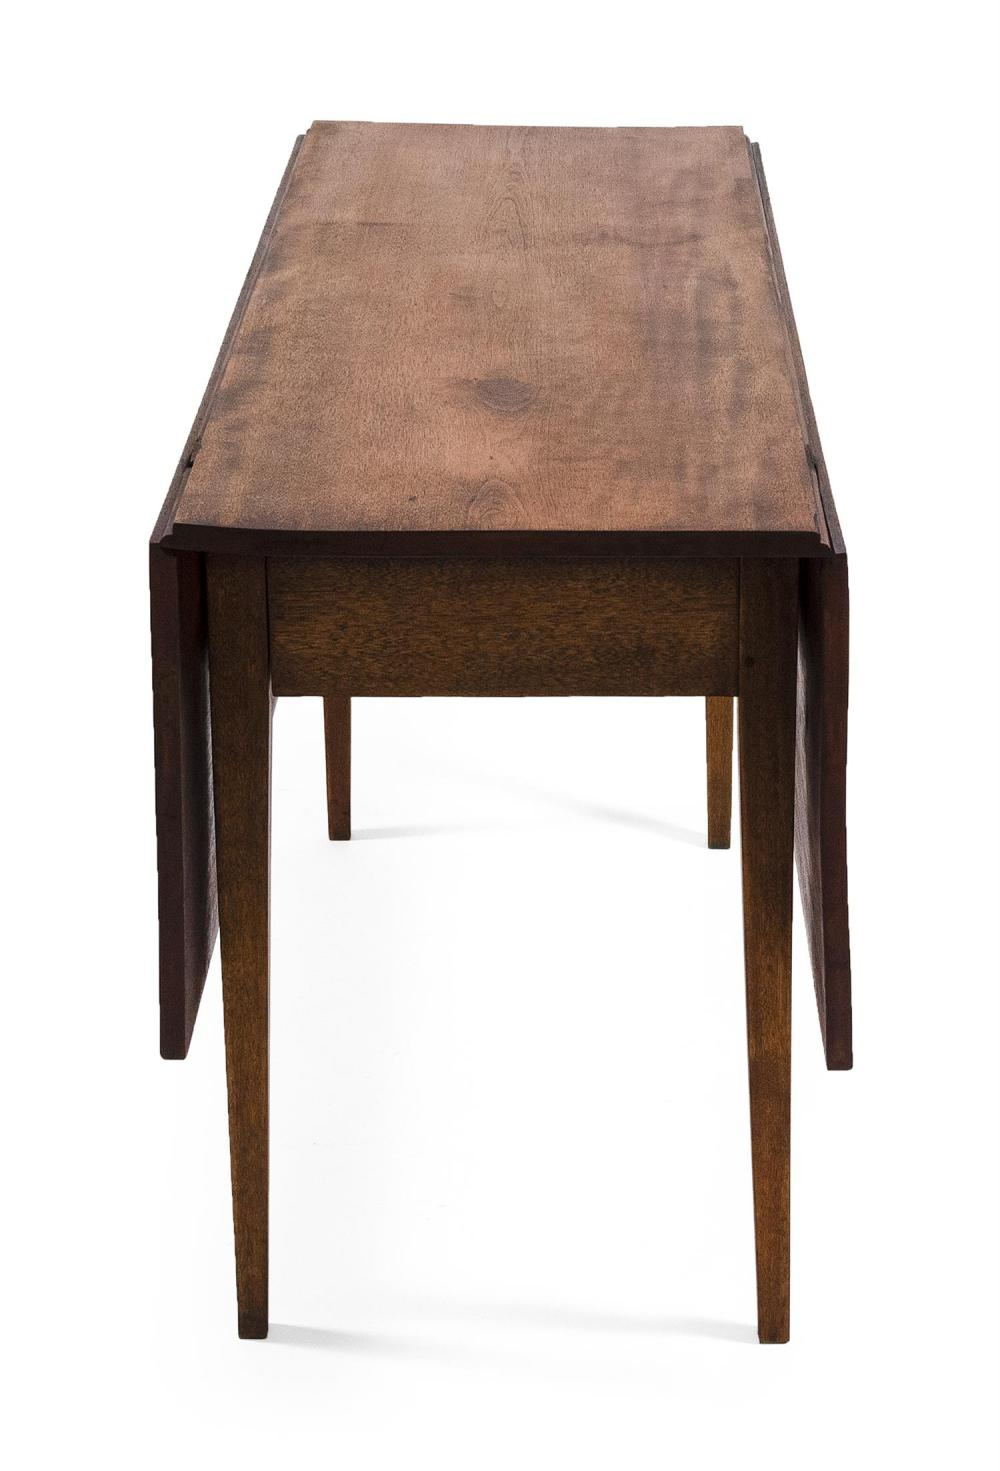 HEPPLEWHITE DROP-LEAF TABLE In mahogany, with tapered legs. Height 28